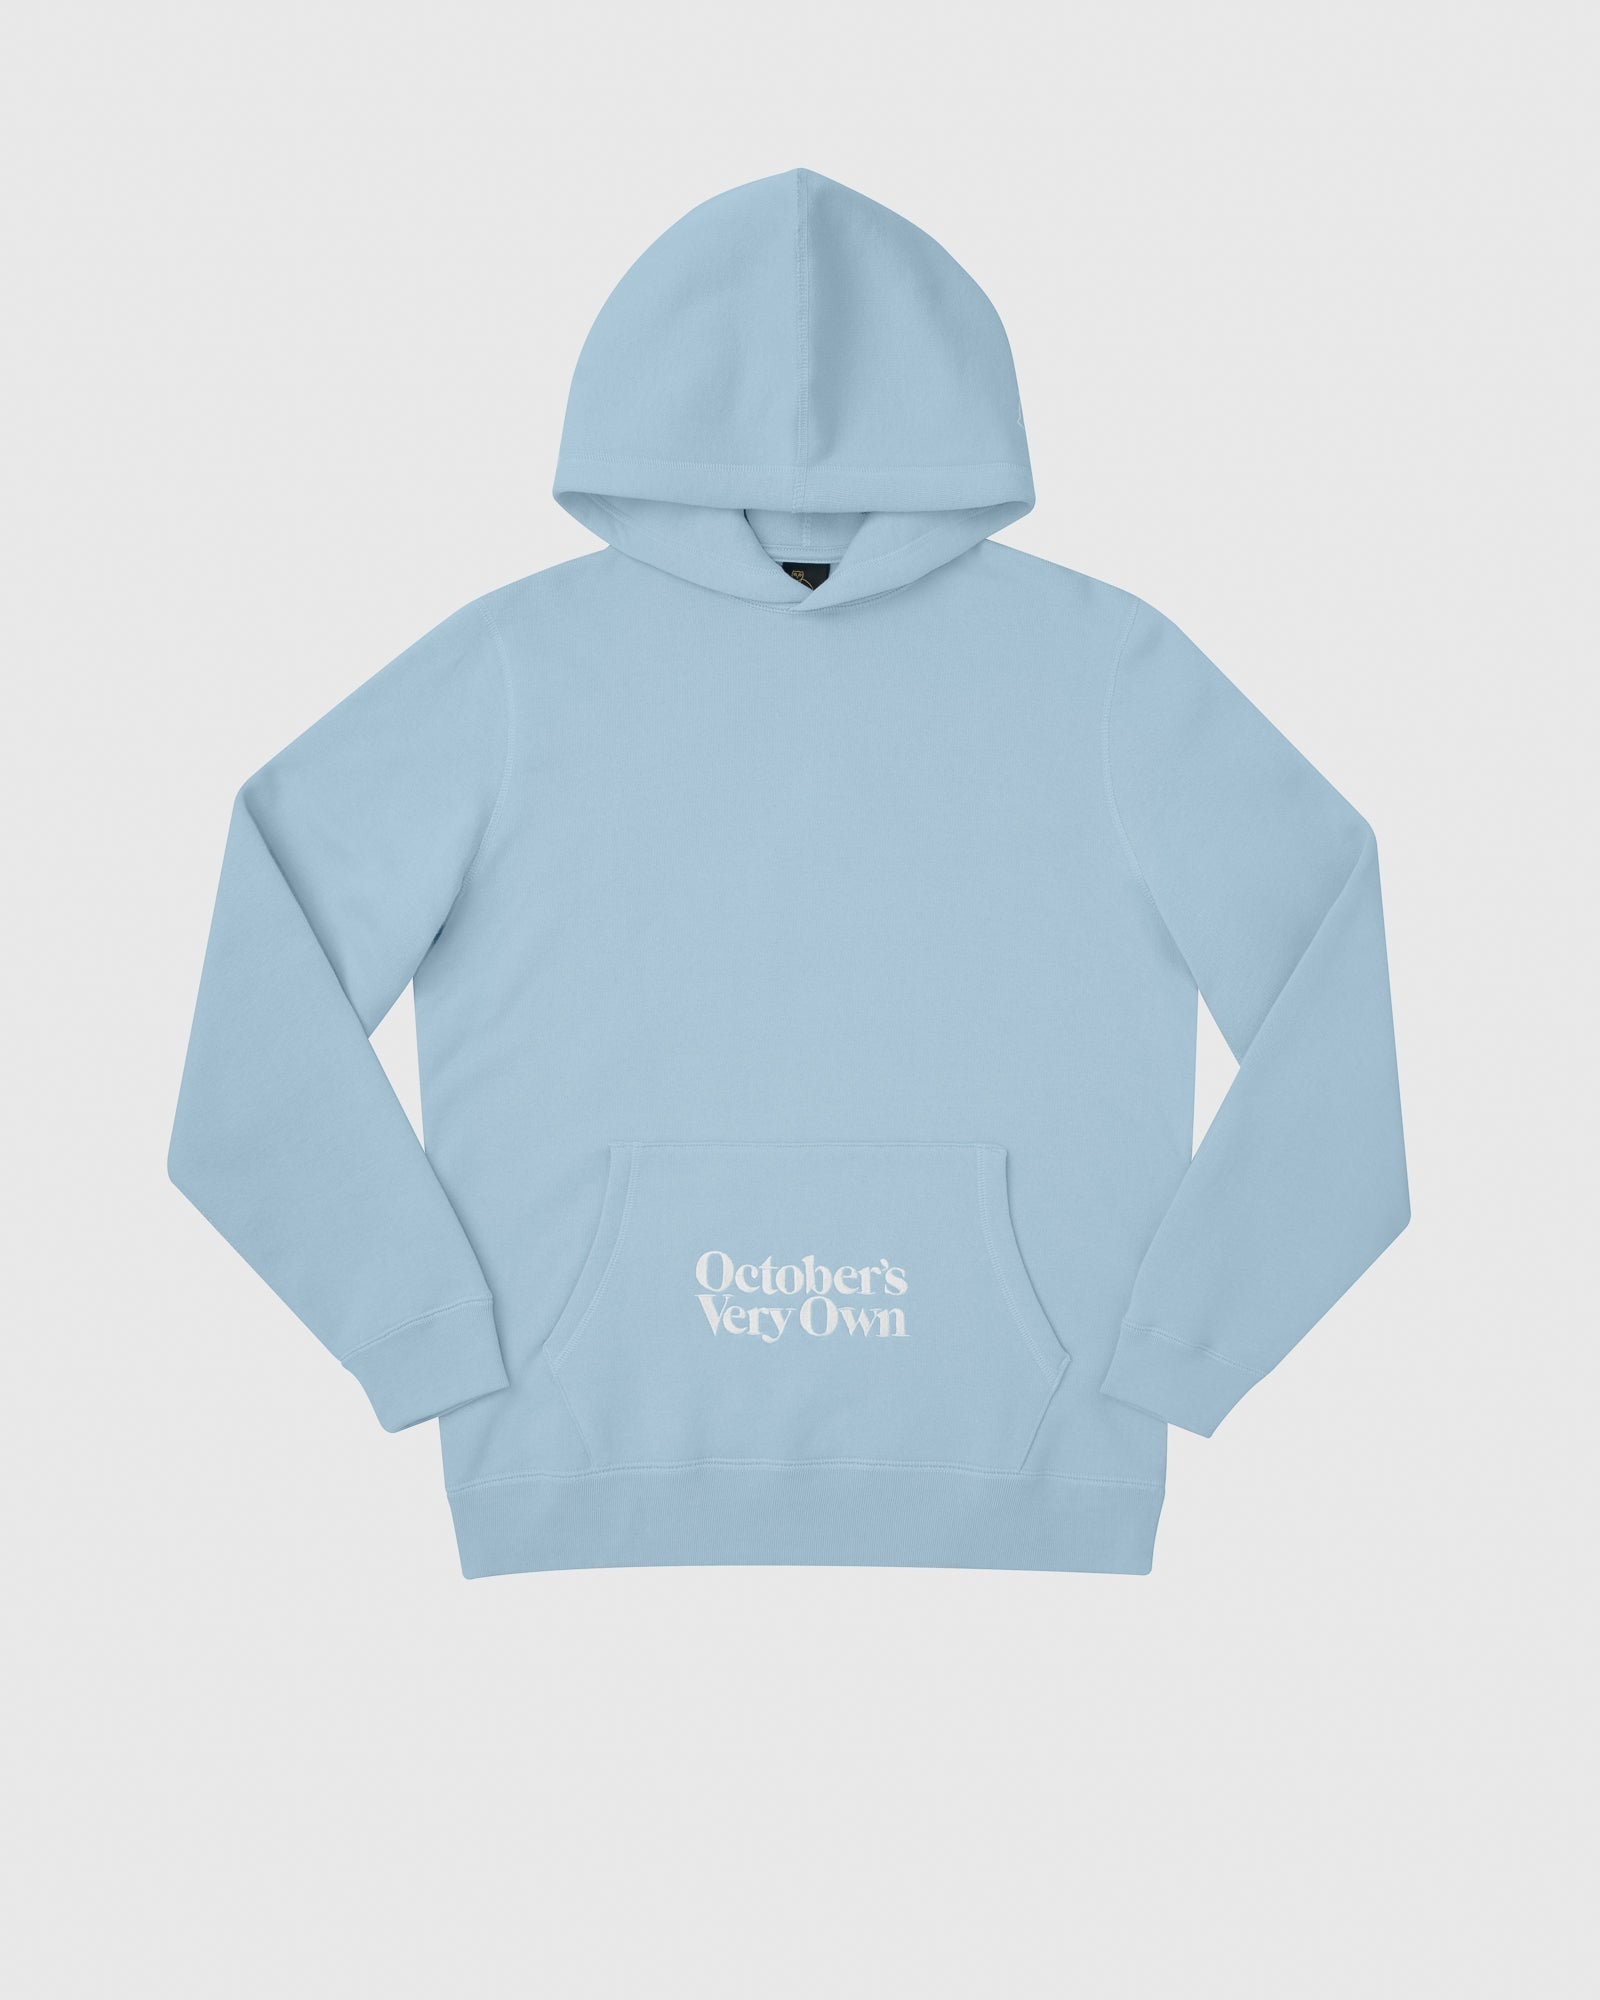 FAMILIA EMBROIDERED POCKET HOODIE - SKY BLUE IMAGE #1